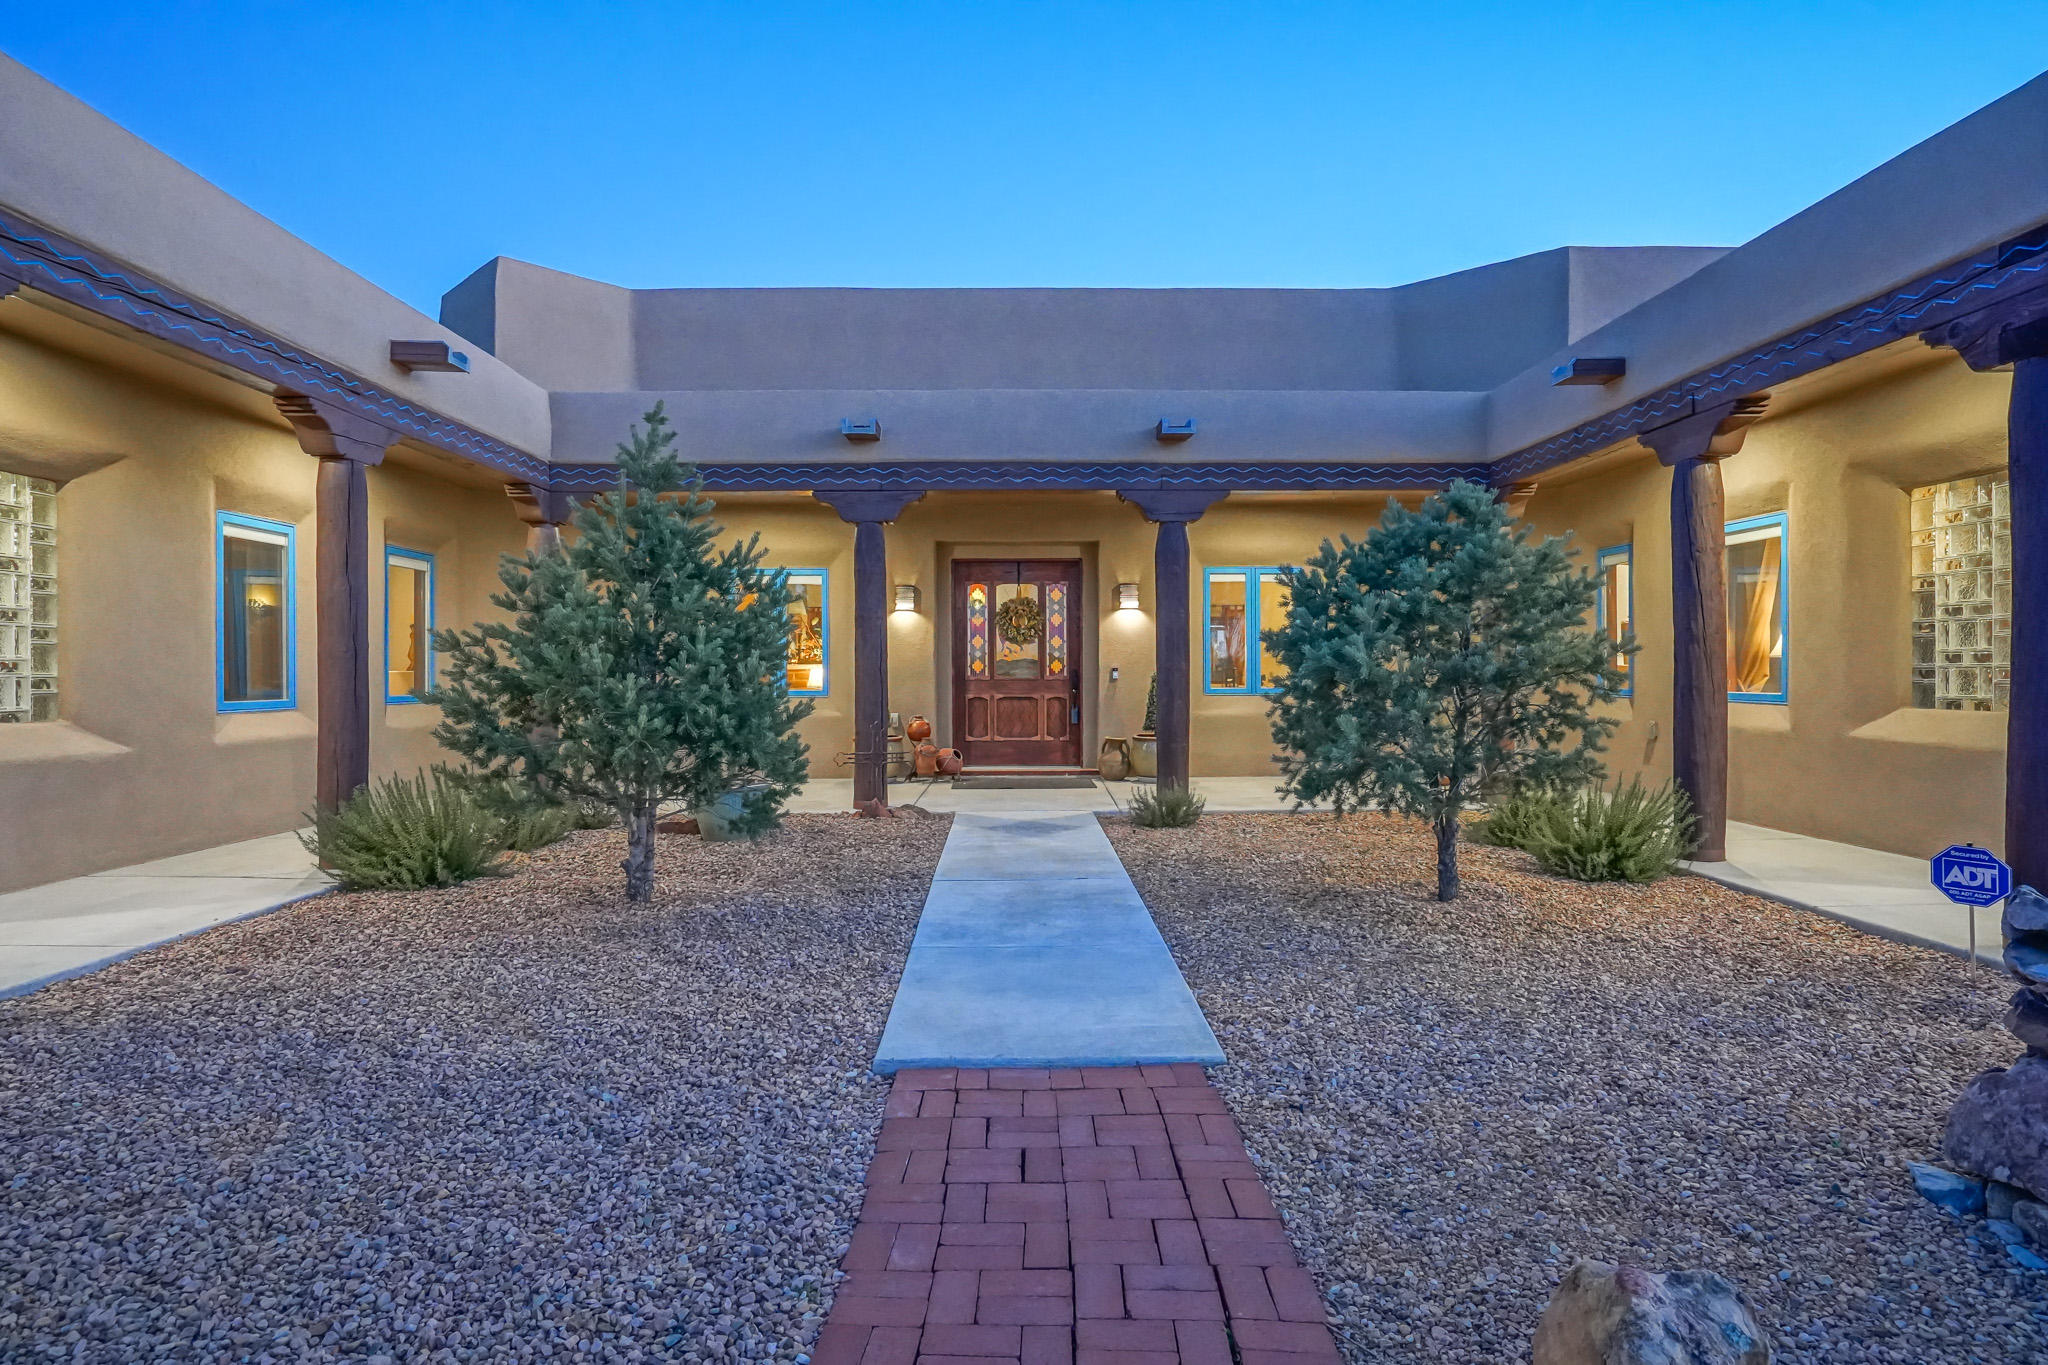 Gracious Classic Santa Fe Style Hacienda on .89  North Abq Acres. Whole casa warm brick radiant heated floors,4 Kiva fireplaces, 5 bdrms, 3+ car garage, Pella wood windows, artisan woodwork, hand carved doors & posts, furniture quality handcrafted soft close dovetail cabinetry, wide wood trim, silver finials. Owners retreat like none other: 2 way fireplace, attached den and exercise space, beamed ceiling, dbl sinks, jetted tub, travertine shower, walk-in closet. Fully appointed Chef's entertaining kitchen, pot filler, 4 Wolf ovens, 4 burners + griddle/grill, Sub-Zero Side by Sides, huge butler's pantry with built ins. Outdoor kitchen playground, Wolf grill, wood burning Kiva, TV,  pergola covered spa. Balloon Fiesta Views! Cable/ethernet in every room + IT room